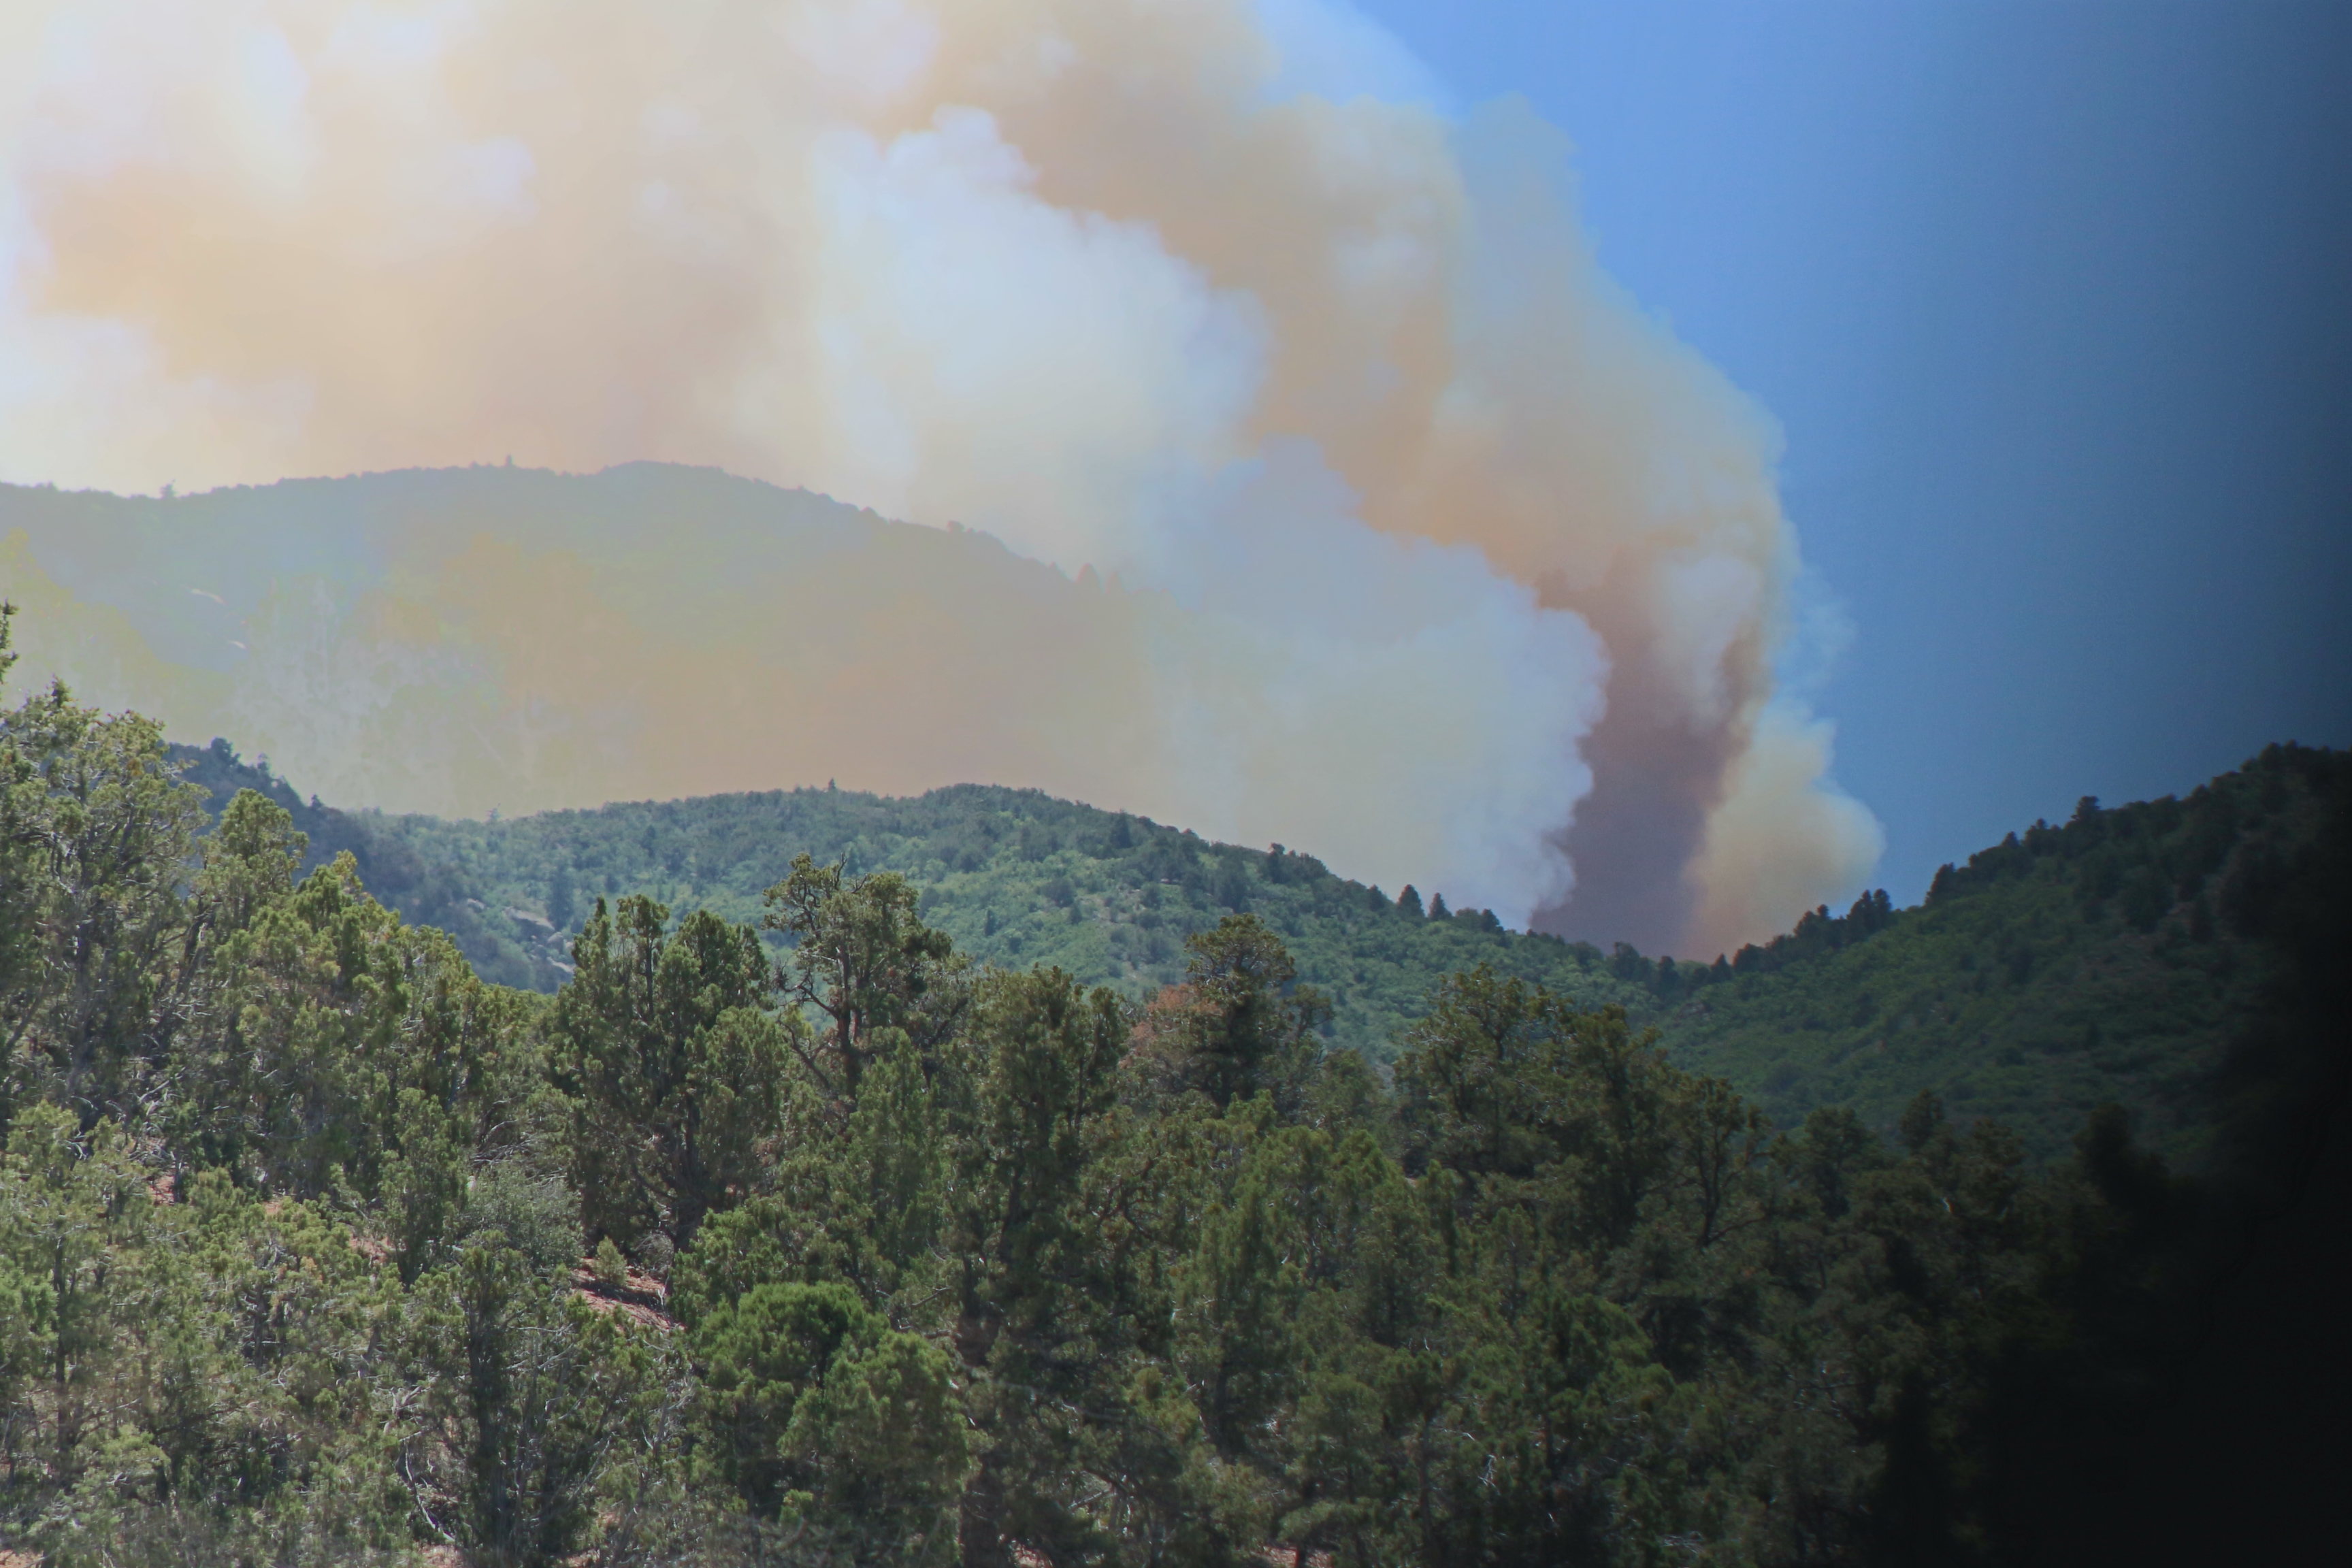 Smoke from the Aspen Fire burning about 15 miles southwest of Cedar City can be seen rising overhead Wednesday, Cedar City, Utah, June 15, 2016 | Photo by Tracie Sullivan, St. George News/Cedar City News